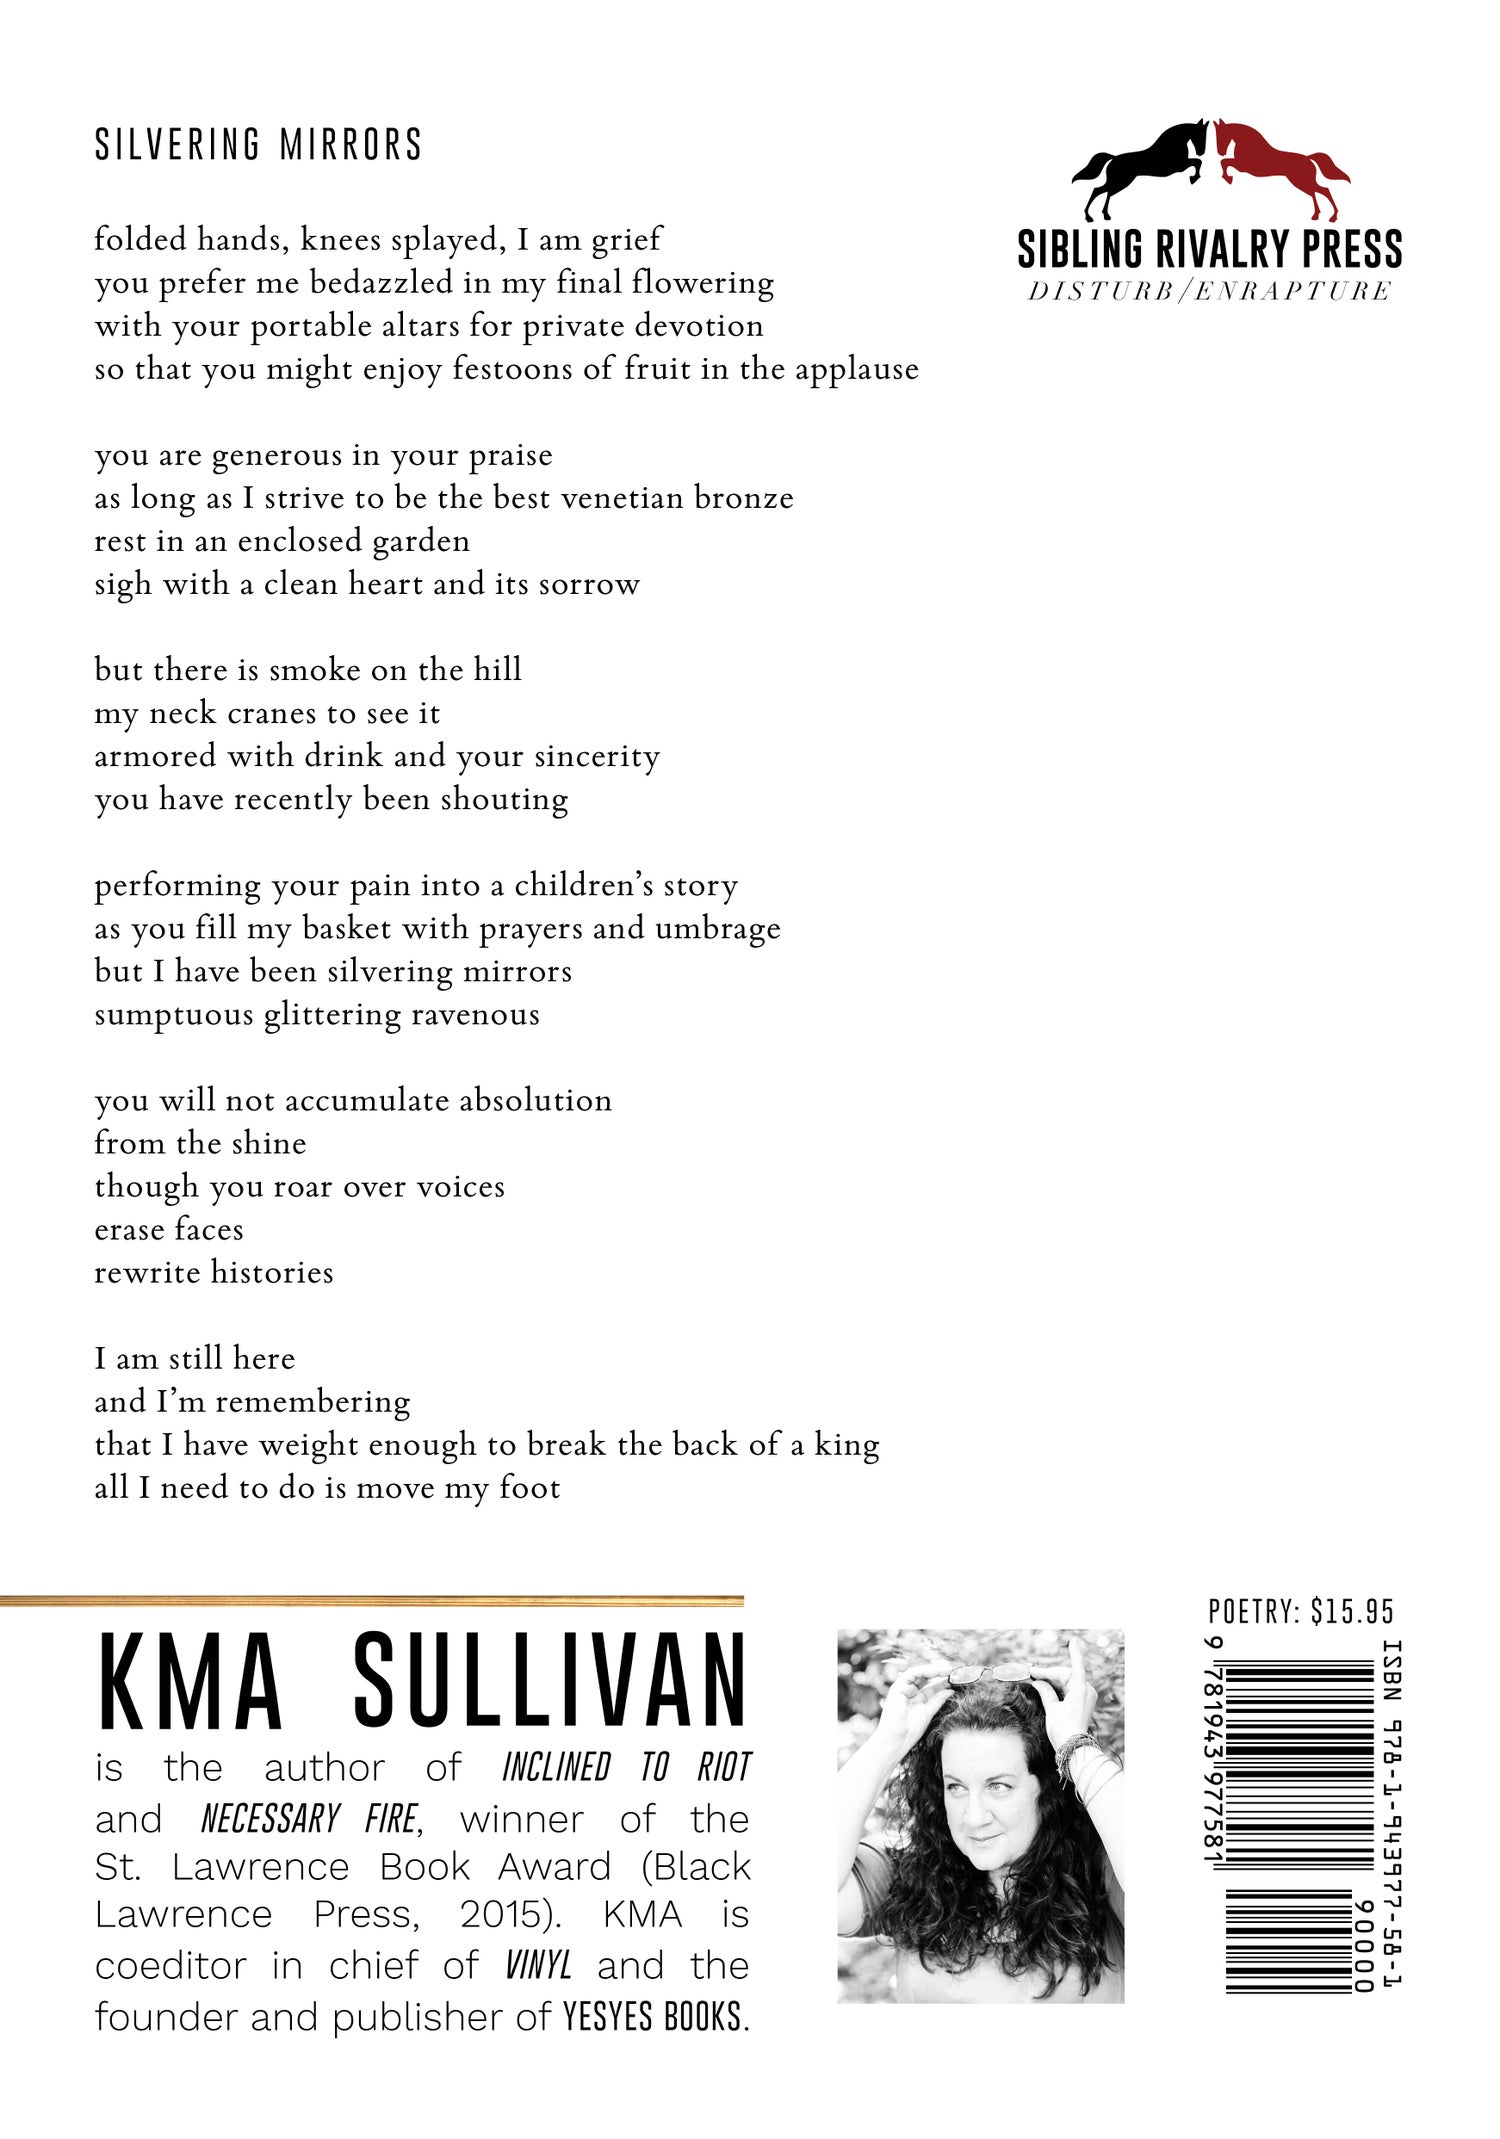 Image of Inclined to Riot by KMA Sullivan